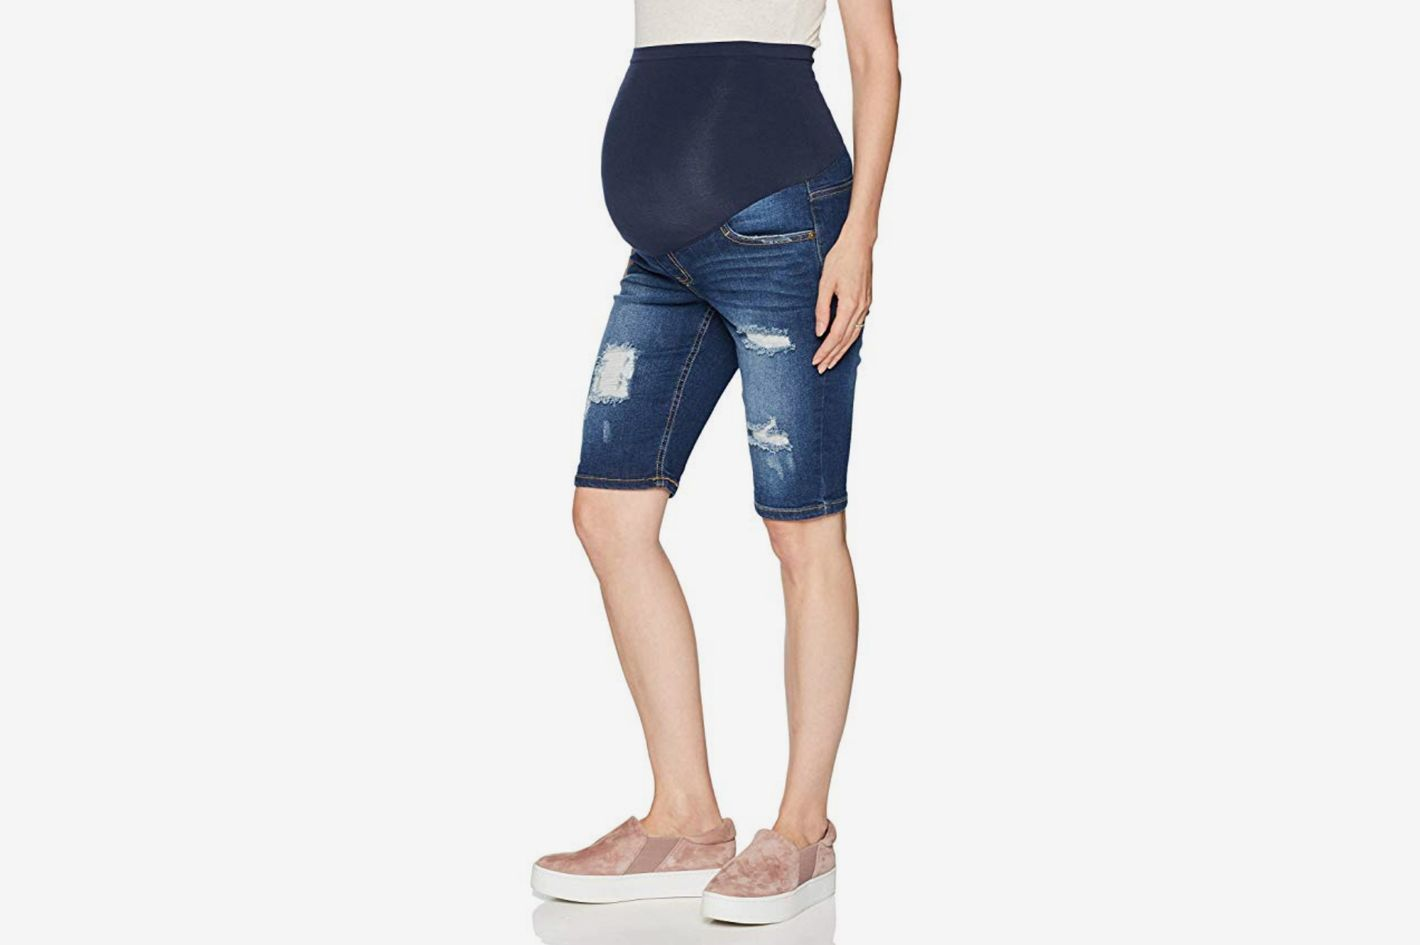 1cd19cd901f83 63 of the Best Maternity Clothes: Jeans, Shirts & More 2018